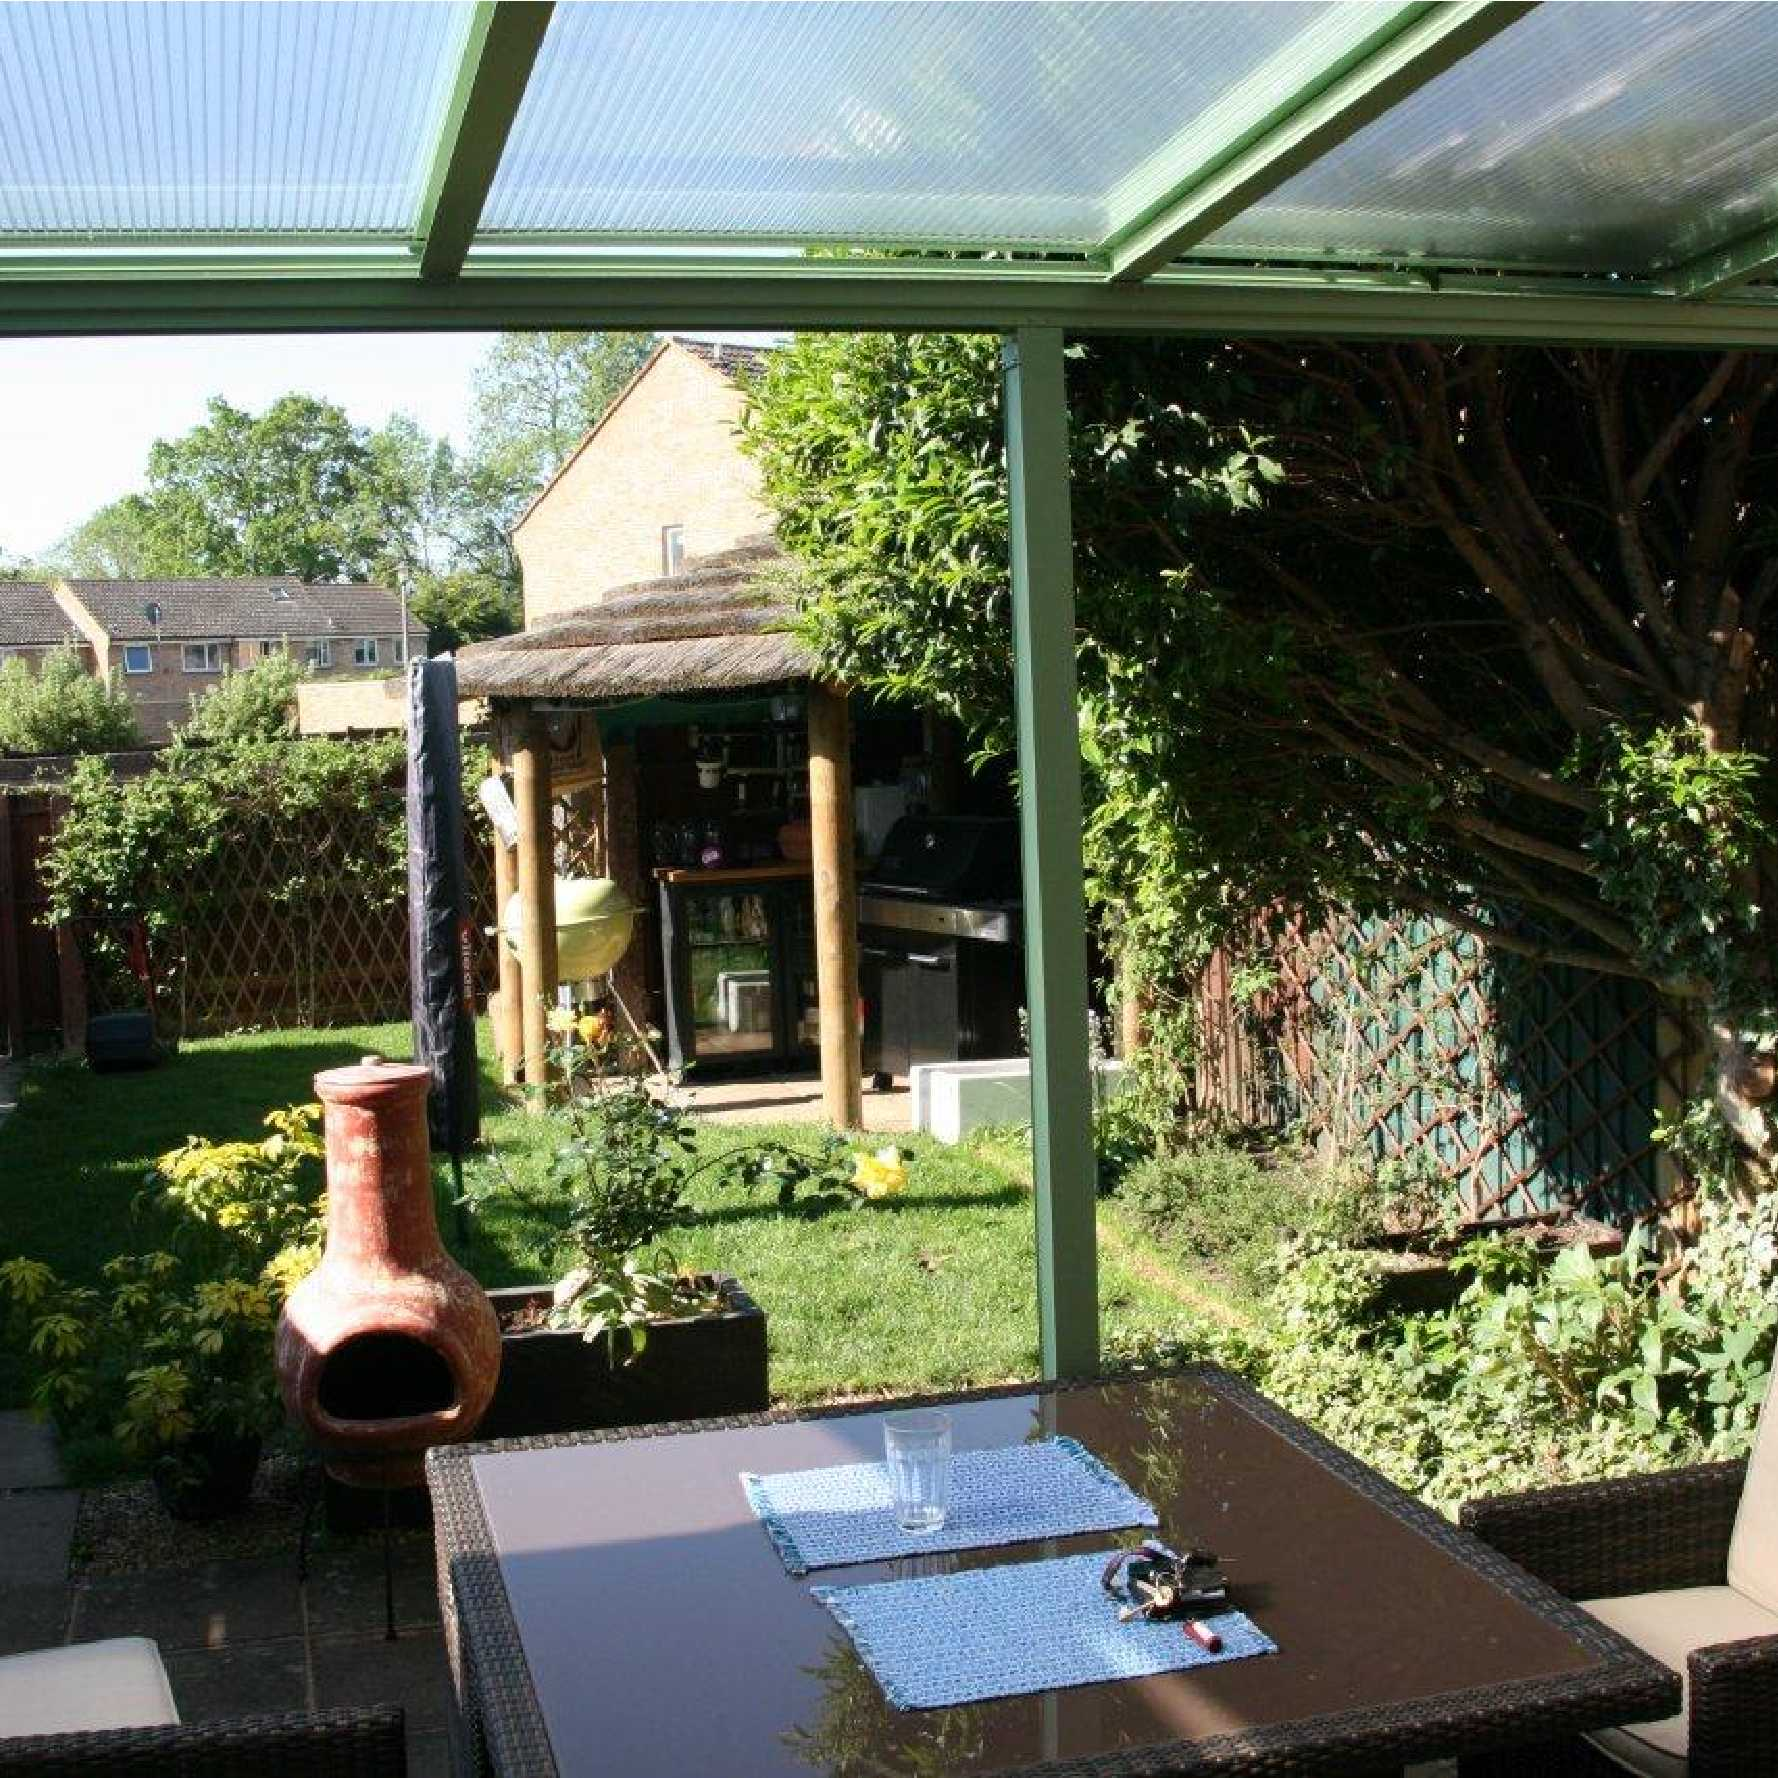 Affordable Omega Smart White Lean-To Canopy with 16mm Polycarbonate Glazing - 3.1m (W) x 4.5m (P), (2) Supporting Posts